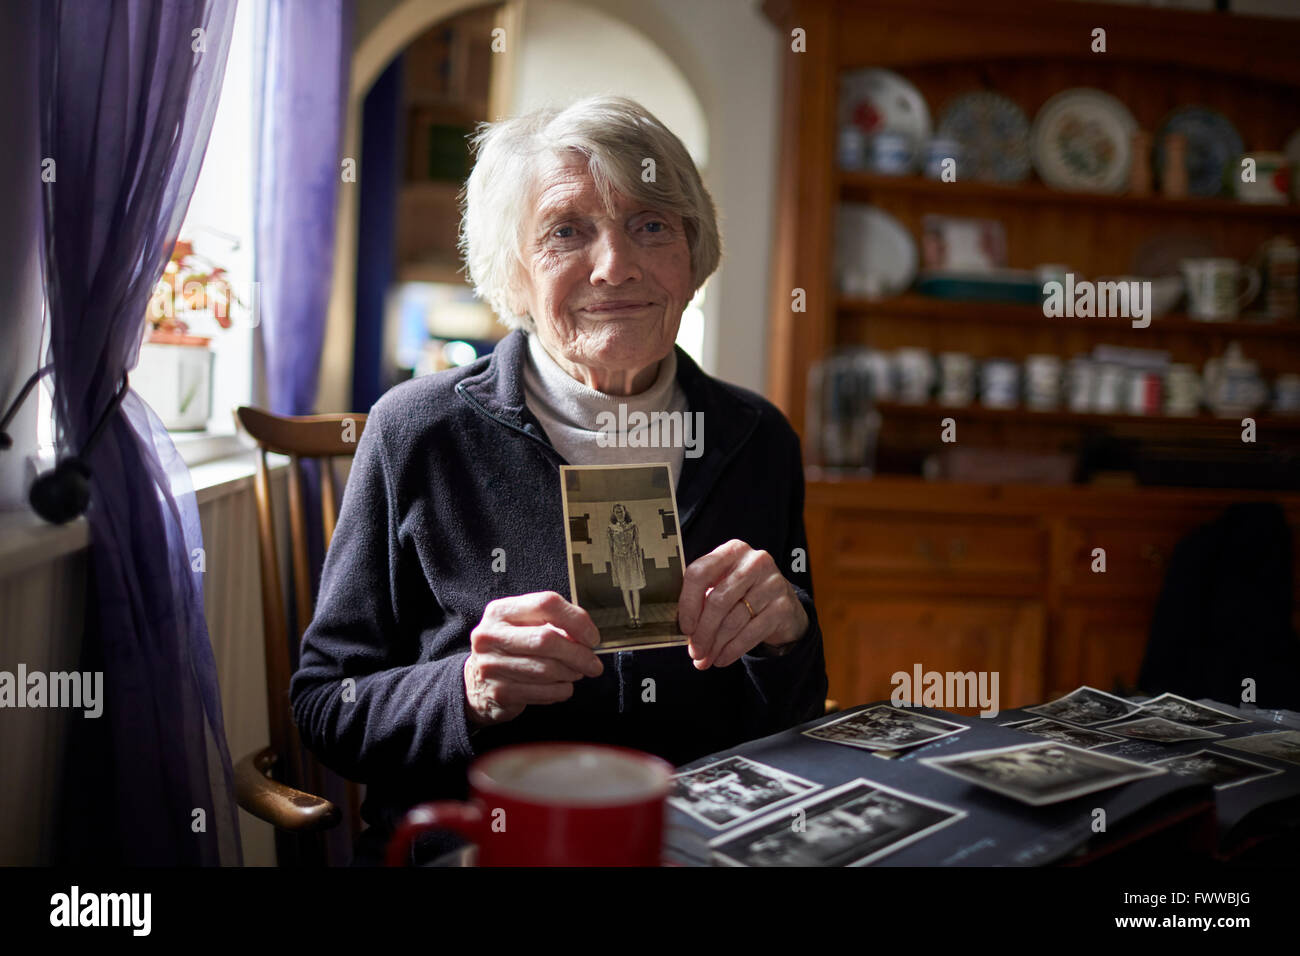 Senior Woman Holding Photo Of Her Younger Self - Stock Image